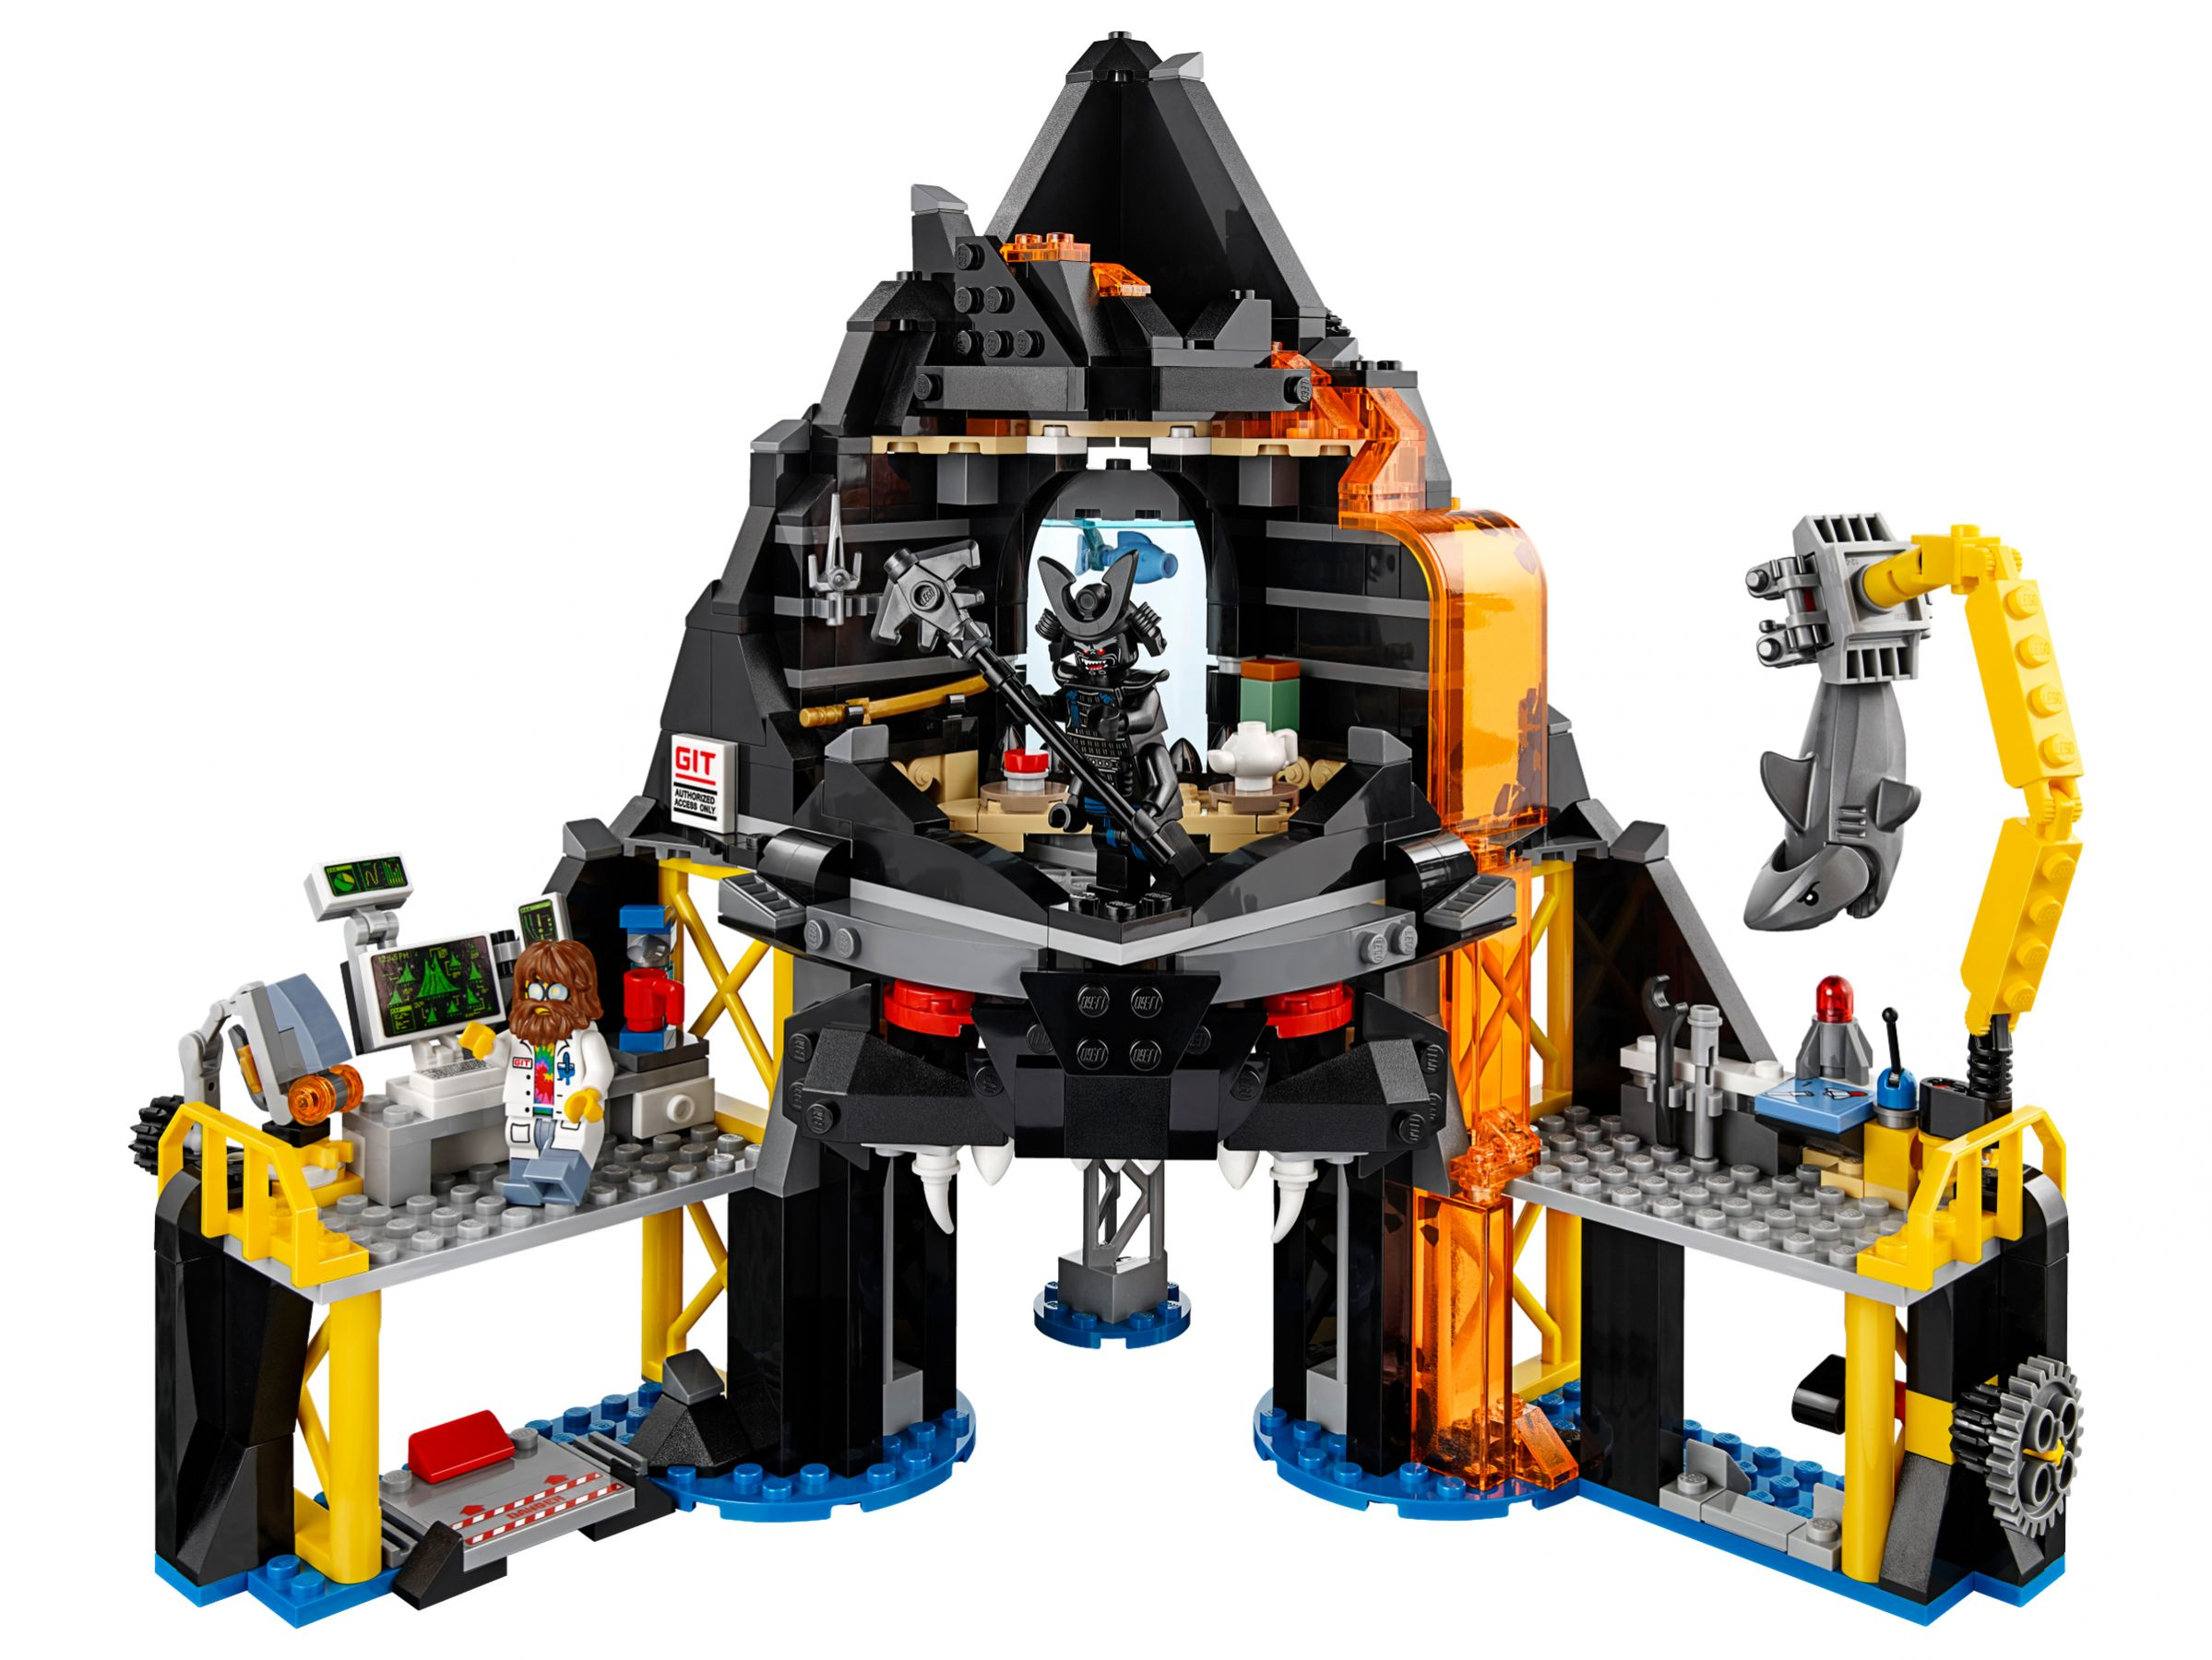 LEGO The LEGO Ninjago Movie 70631 Garmadons Vulkanversteck LEGO_70631_alt2.jpg